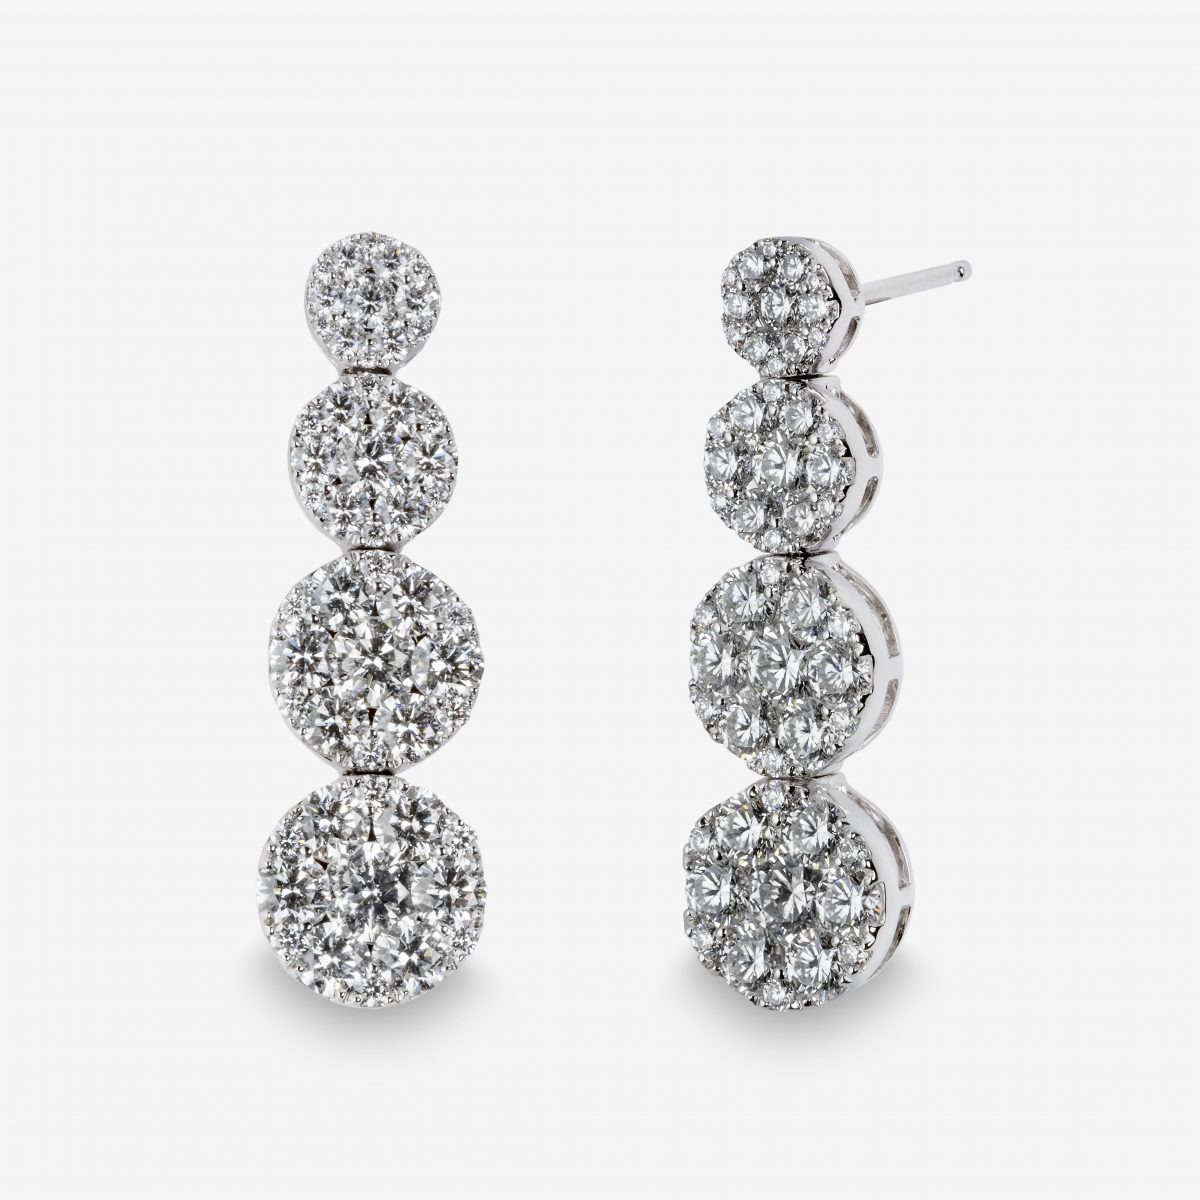 Pendientes oro blanco y brillantes 3,90 quilates.